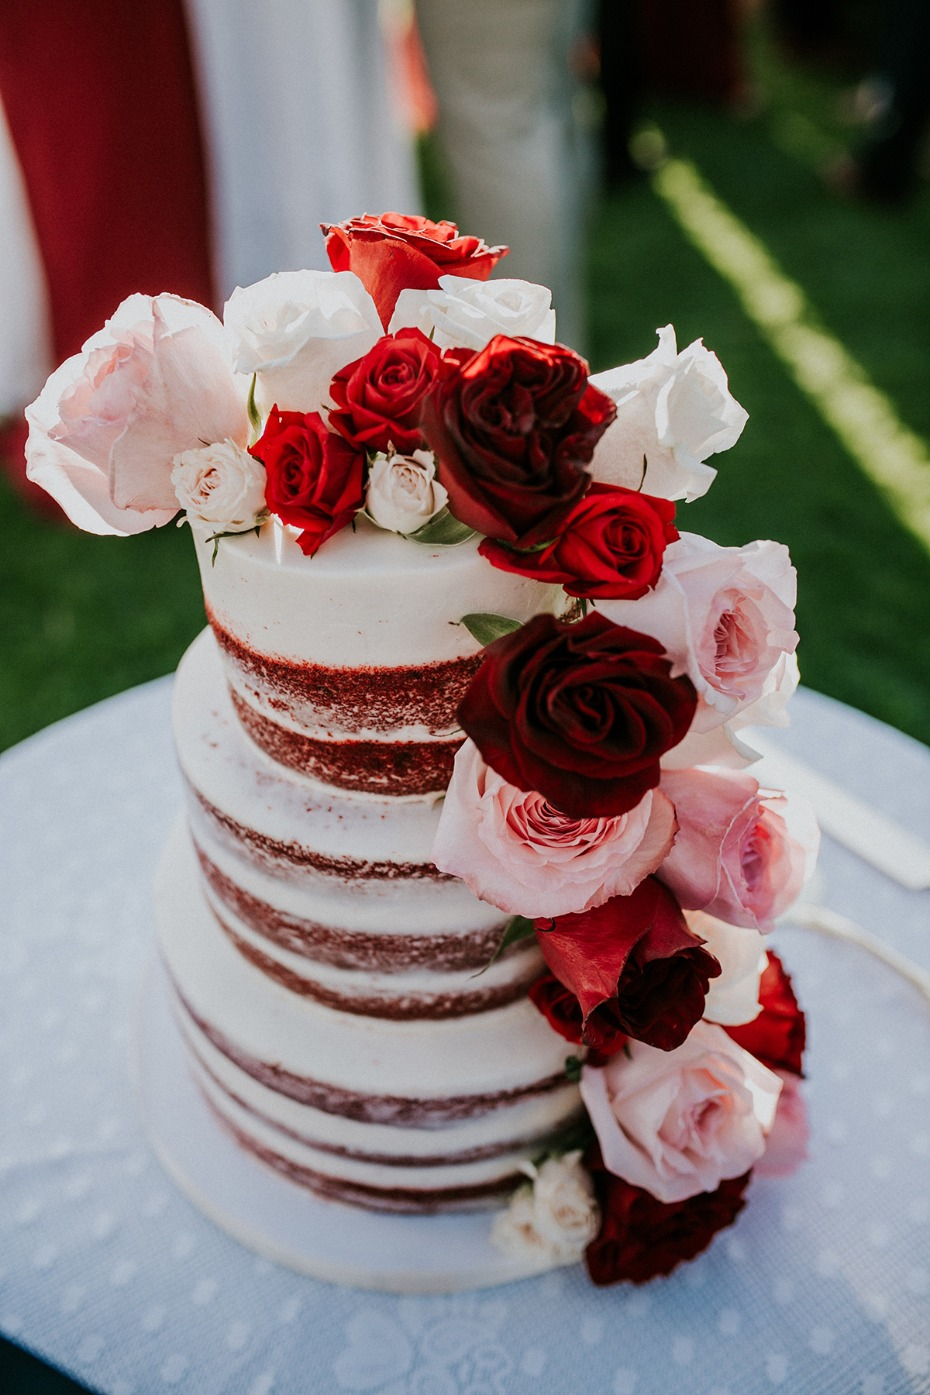 Red velvet naked cake with roses